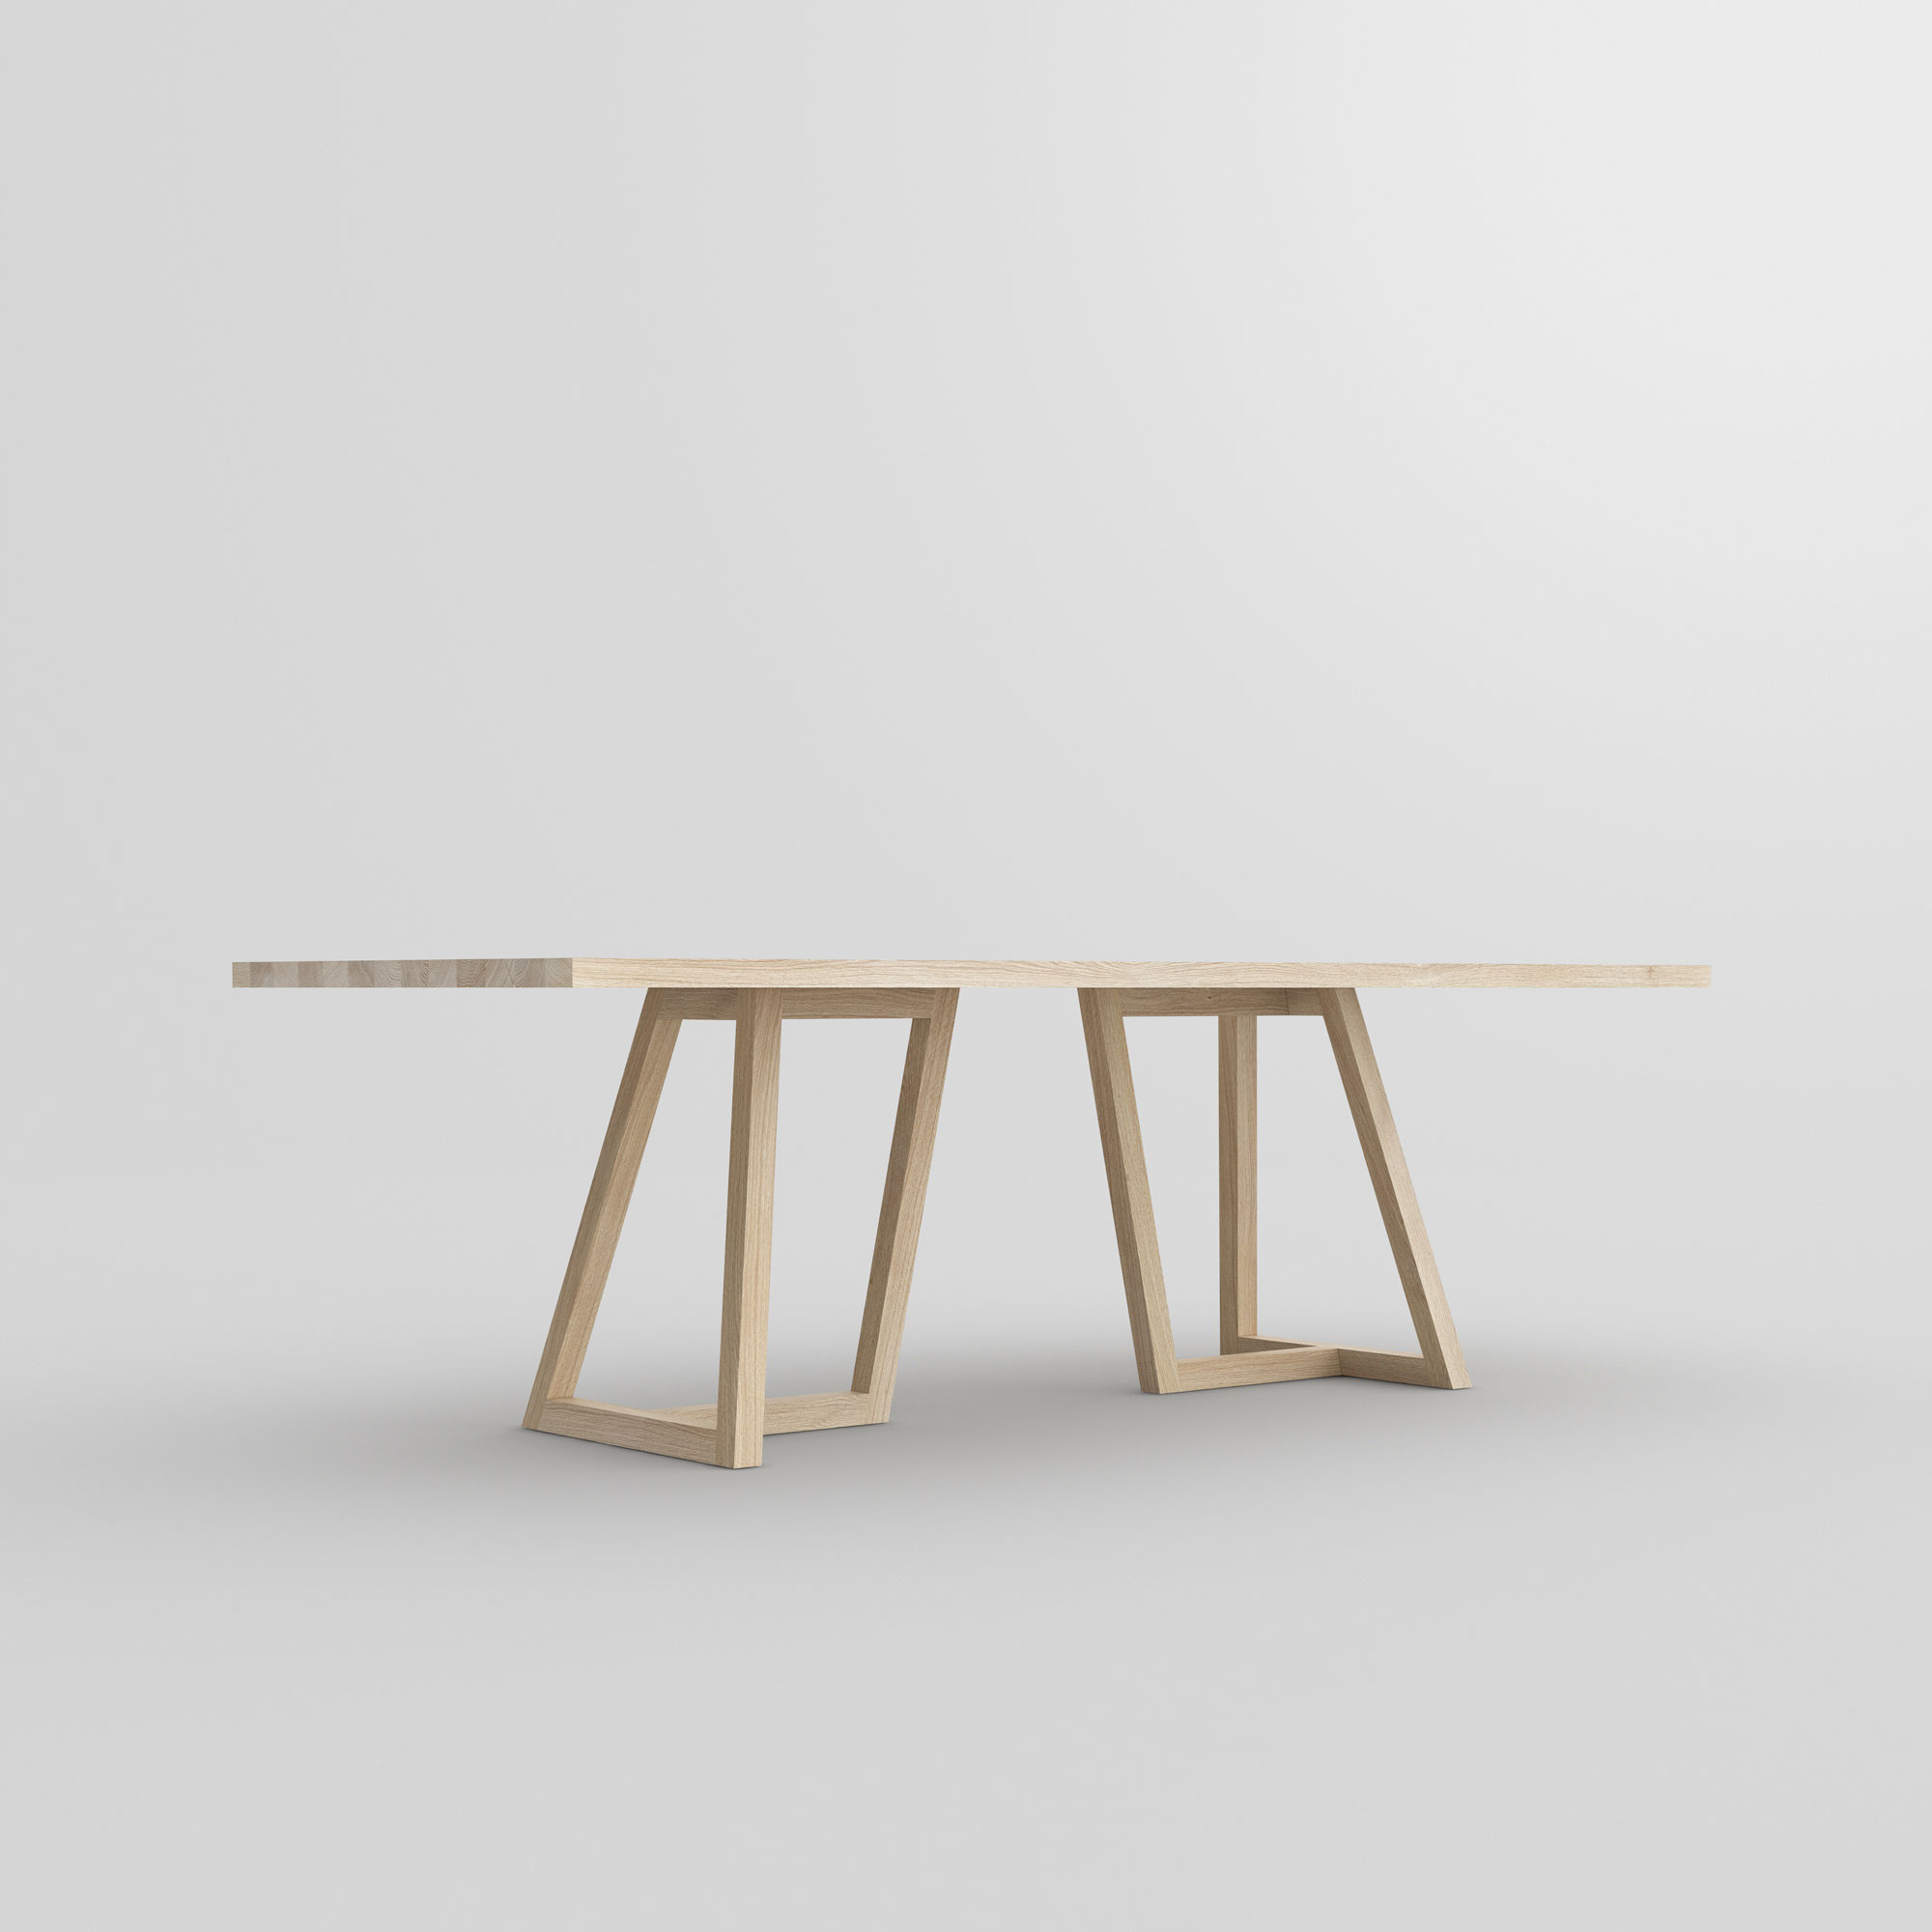 Designer Solid Wood Table MARGO cam5 custom made in solid wood by vitamin design